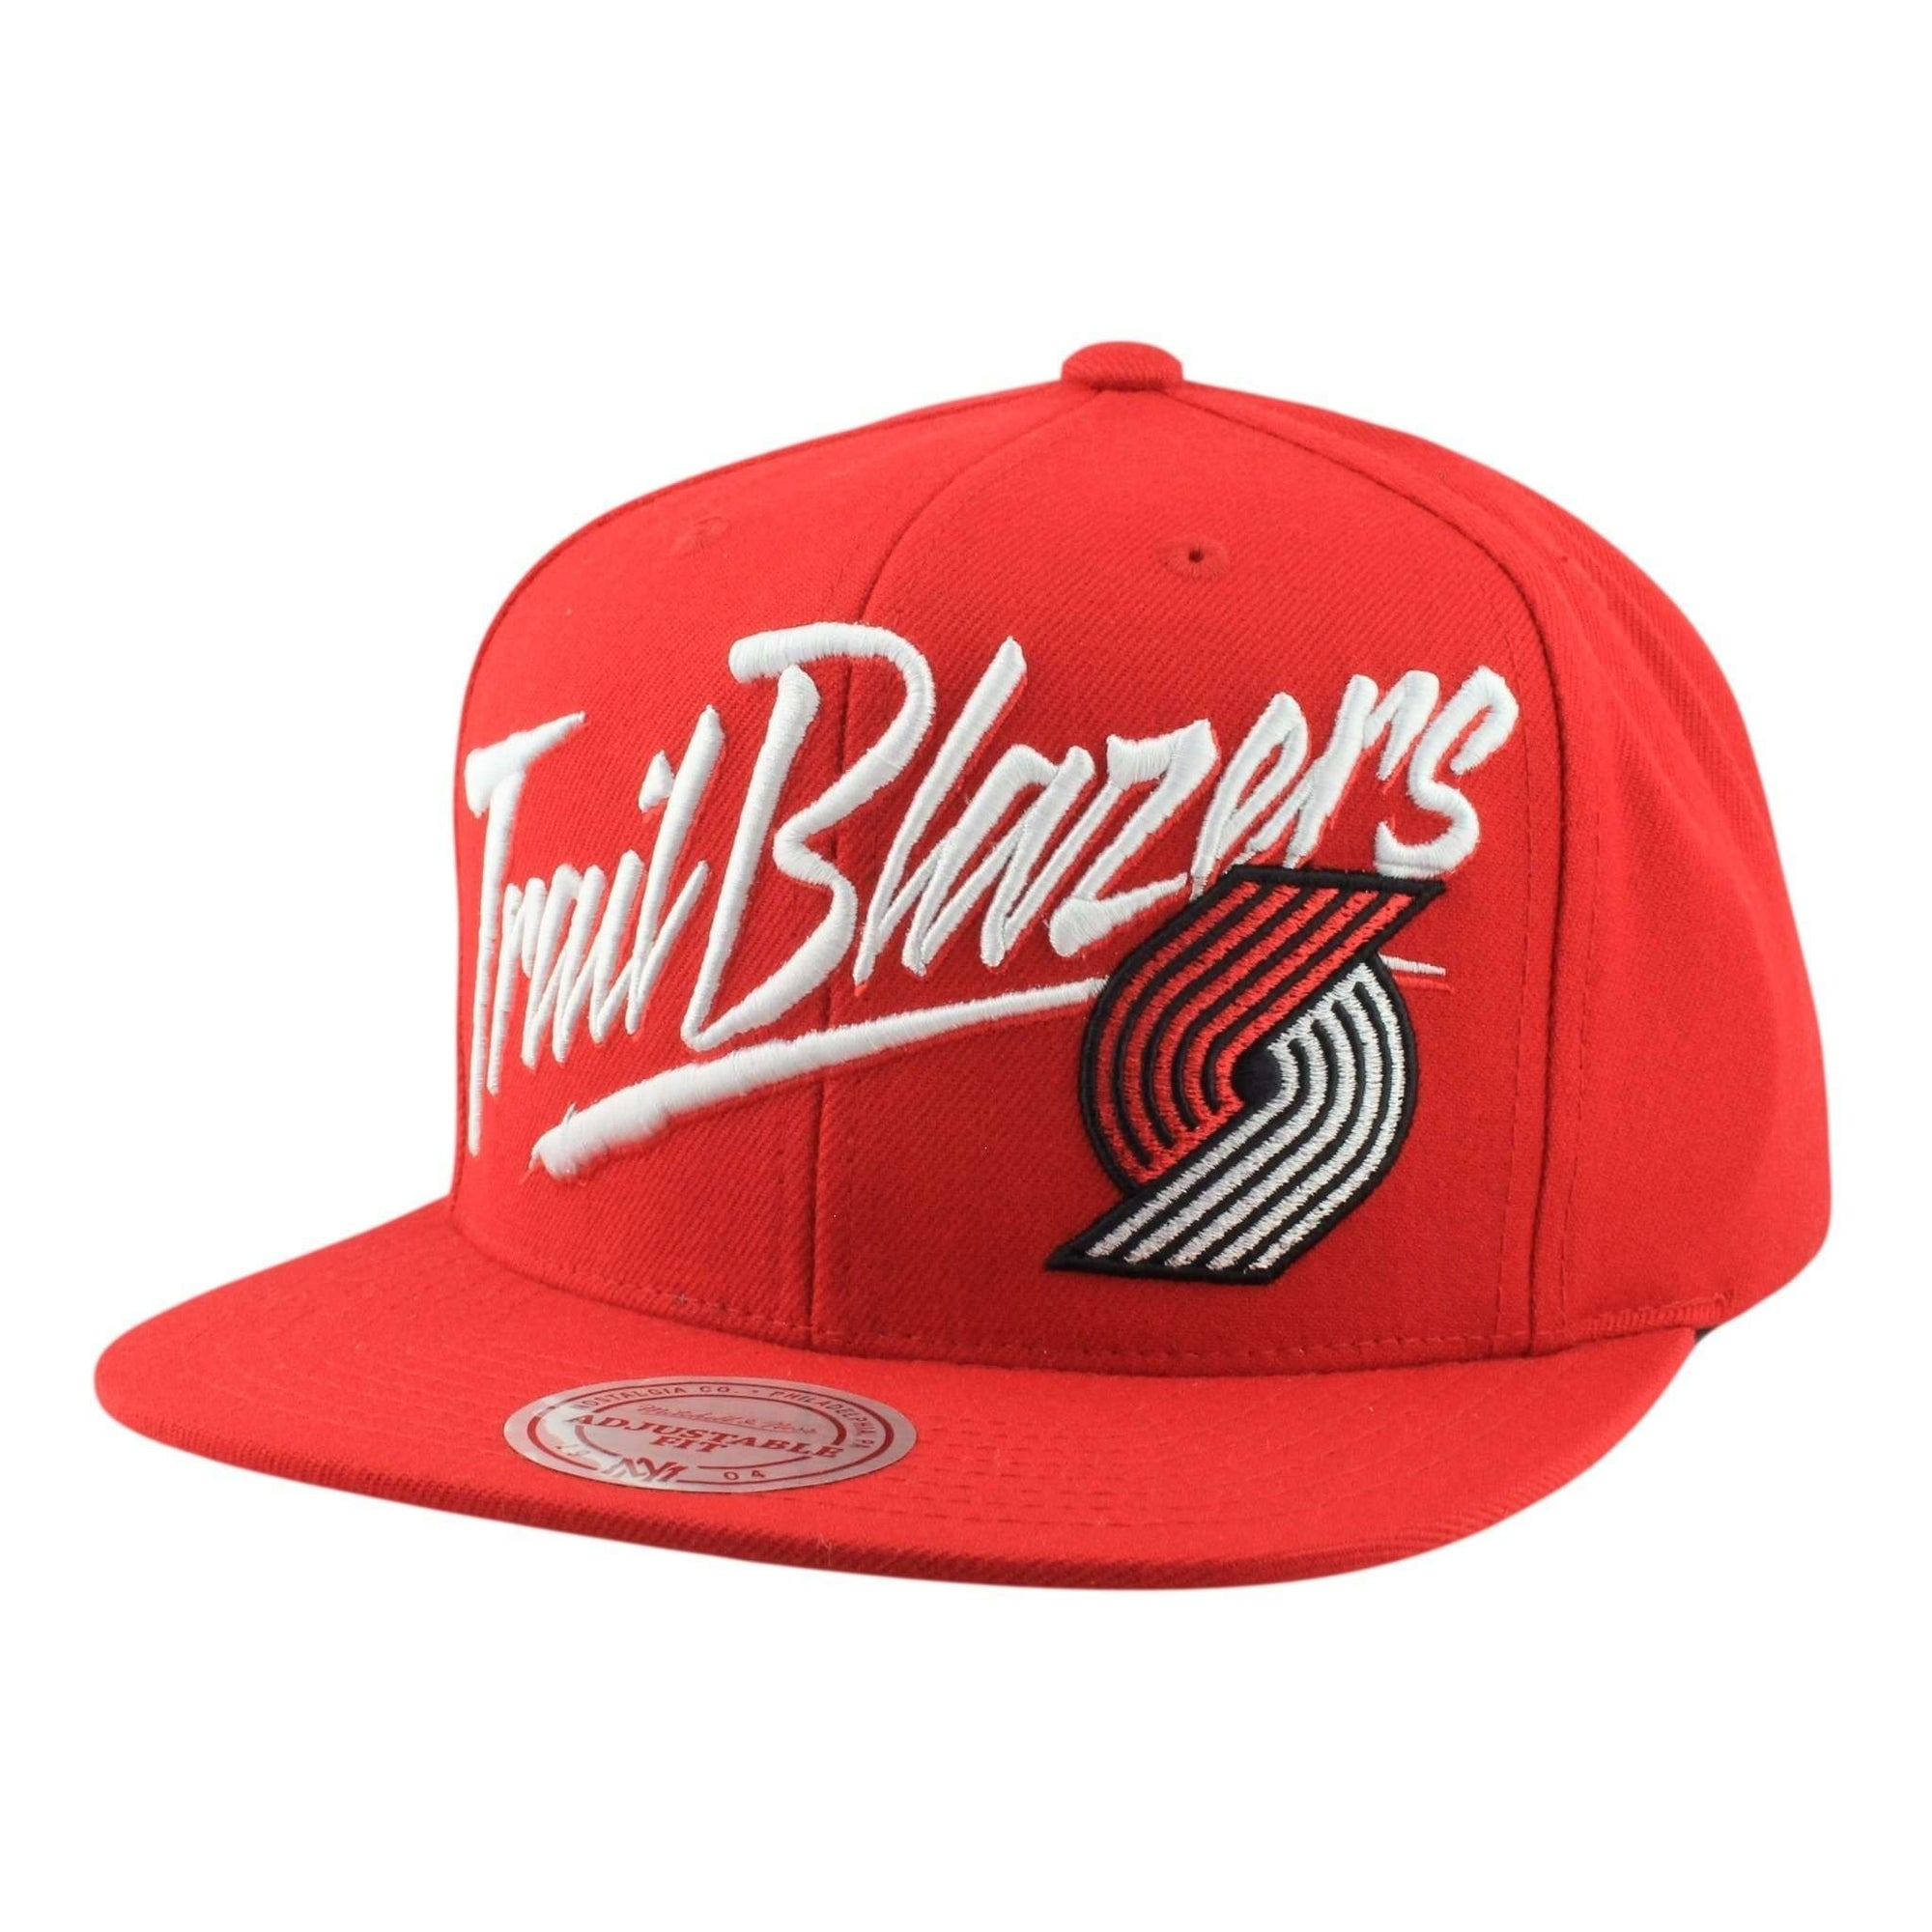 brand new ffa10 04b24 Mitchell and Ness Portland Trail Blazers Vice Script Solid Red Red Snapback